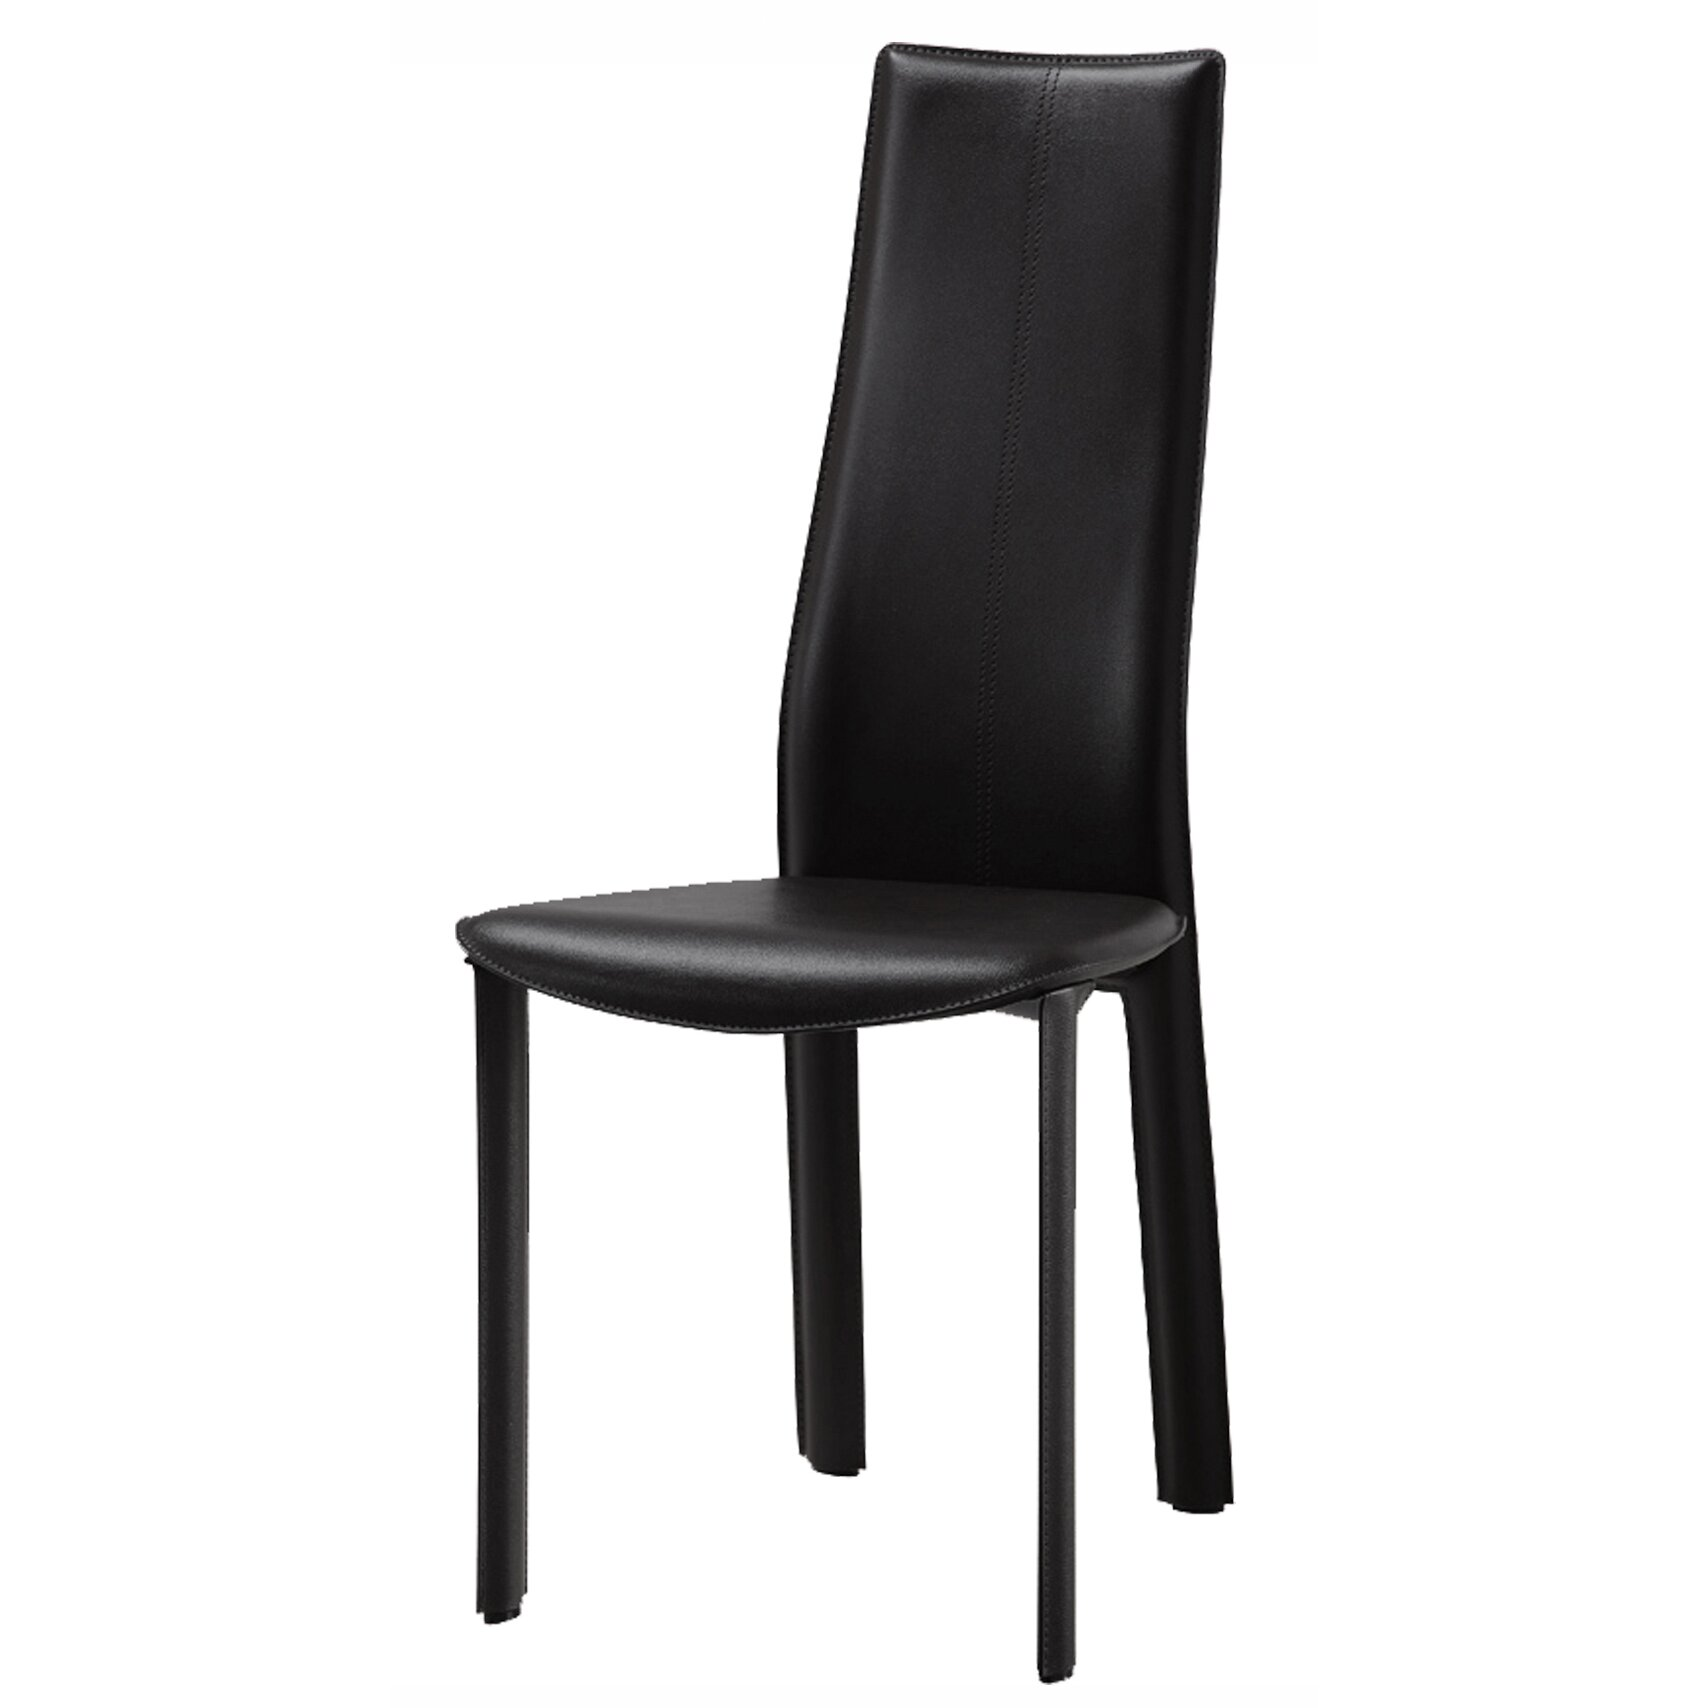 Black upholstered dining chairs - Allison Genuine Leather Upholstered Dining Chair